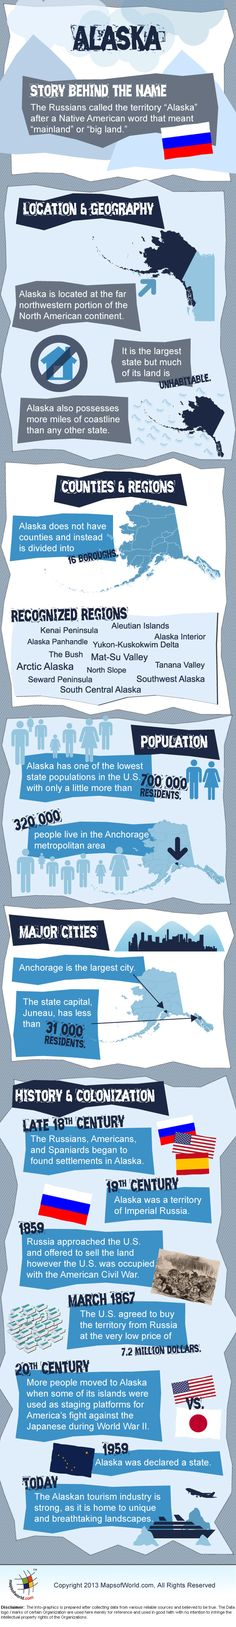 Infographic of Alaska Facts | USA Facts